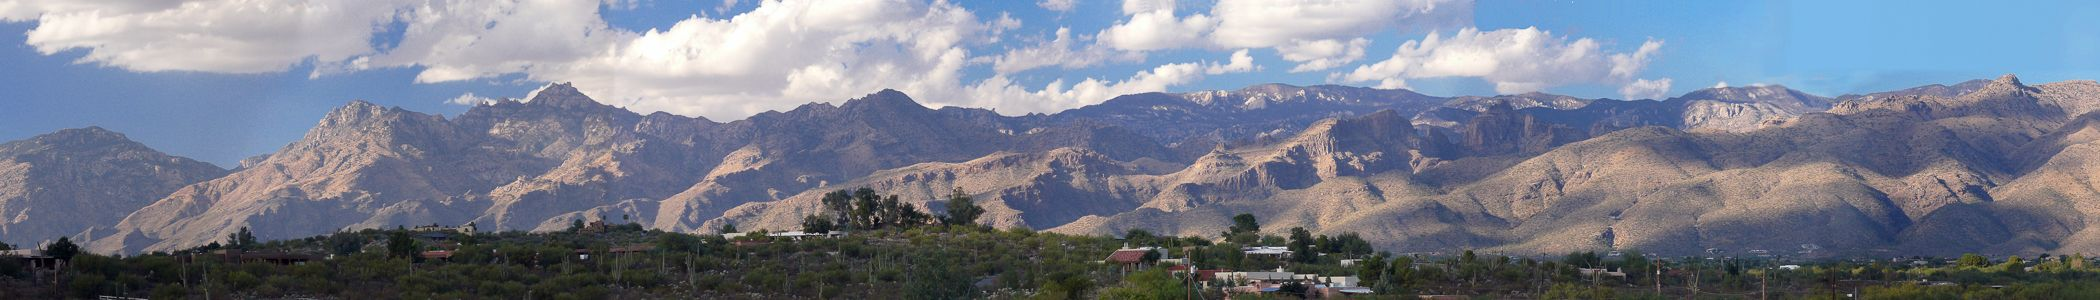 View of the south side of the Santa Catalina Mountains as seen from Tucson, Arizona.